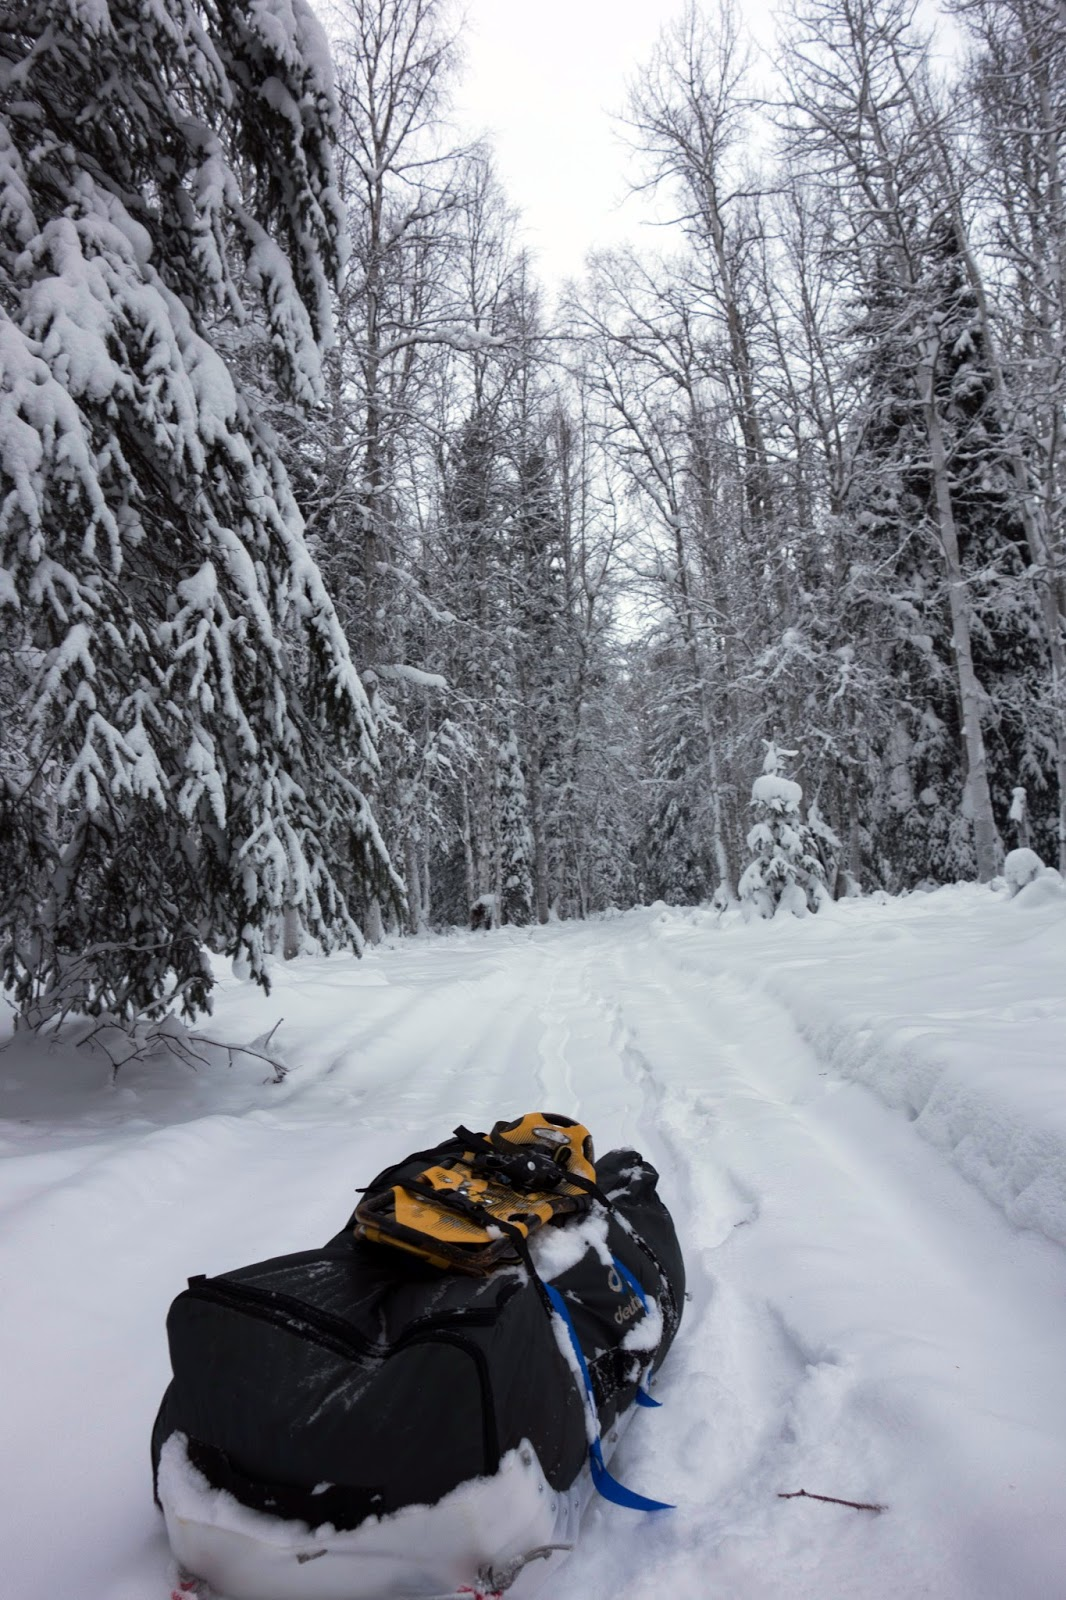 Why Was I Dragging A Sled? Because I'm Still Considering It As A Way To  Avoid That Terrifying Expedition Bymitting To A Harder €� But More  Predictable